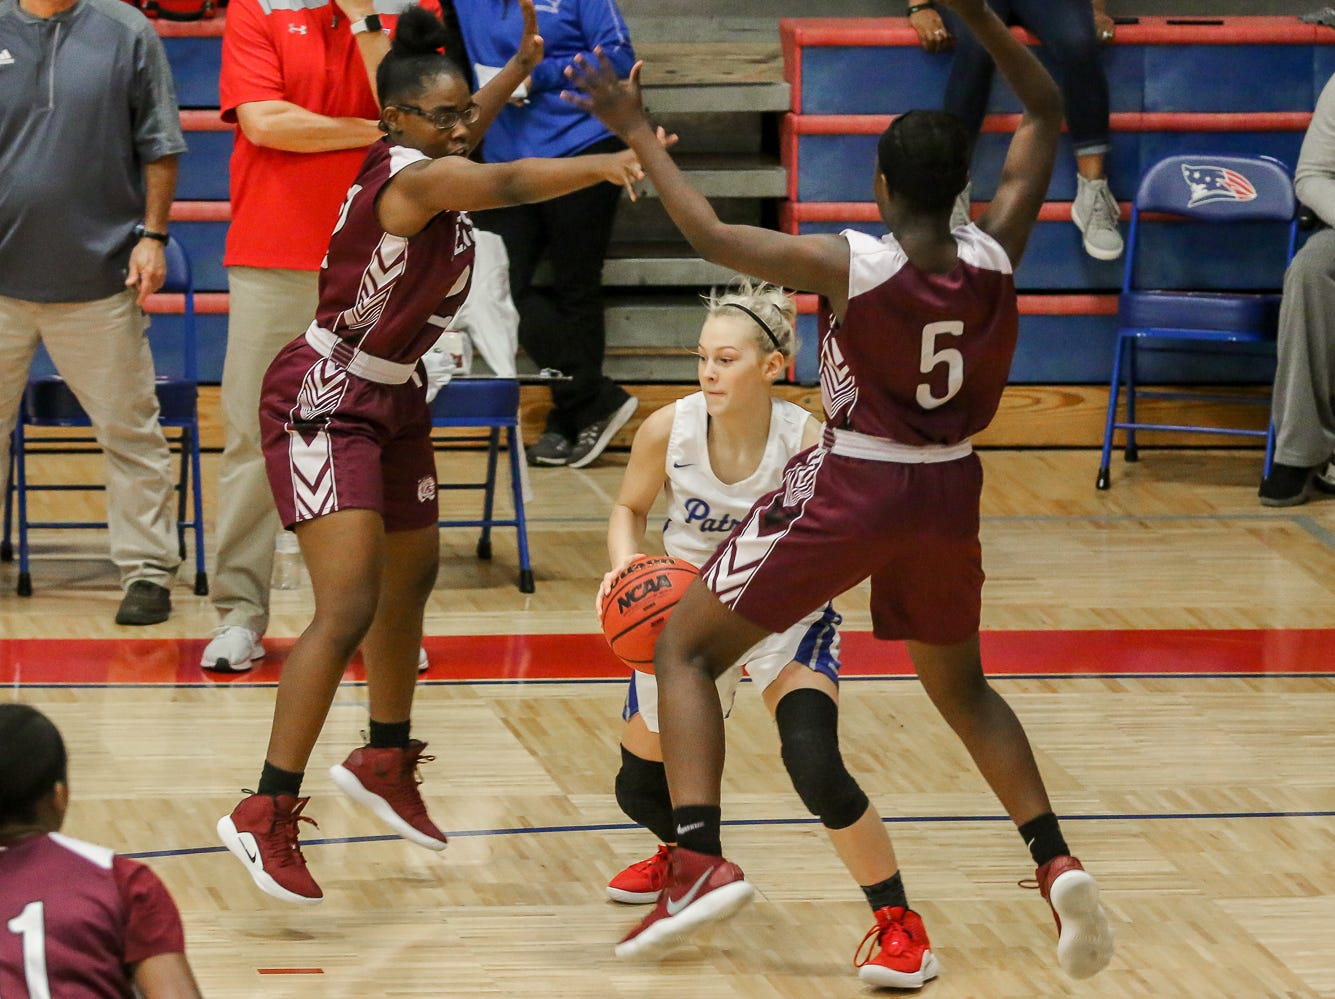 Pace's Laikyn Burklow (3) looks for an opening to squeeze through PHS' Shy'Kera Miller (5) and Amonei Wiggins (22) at Pace High School on Friday, January 4, 2019.